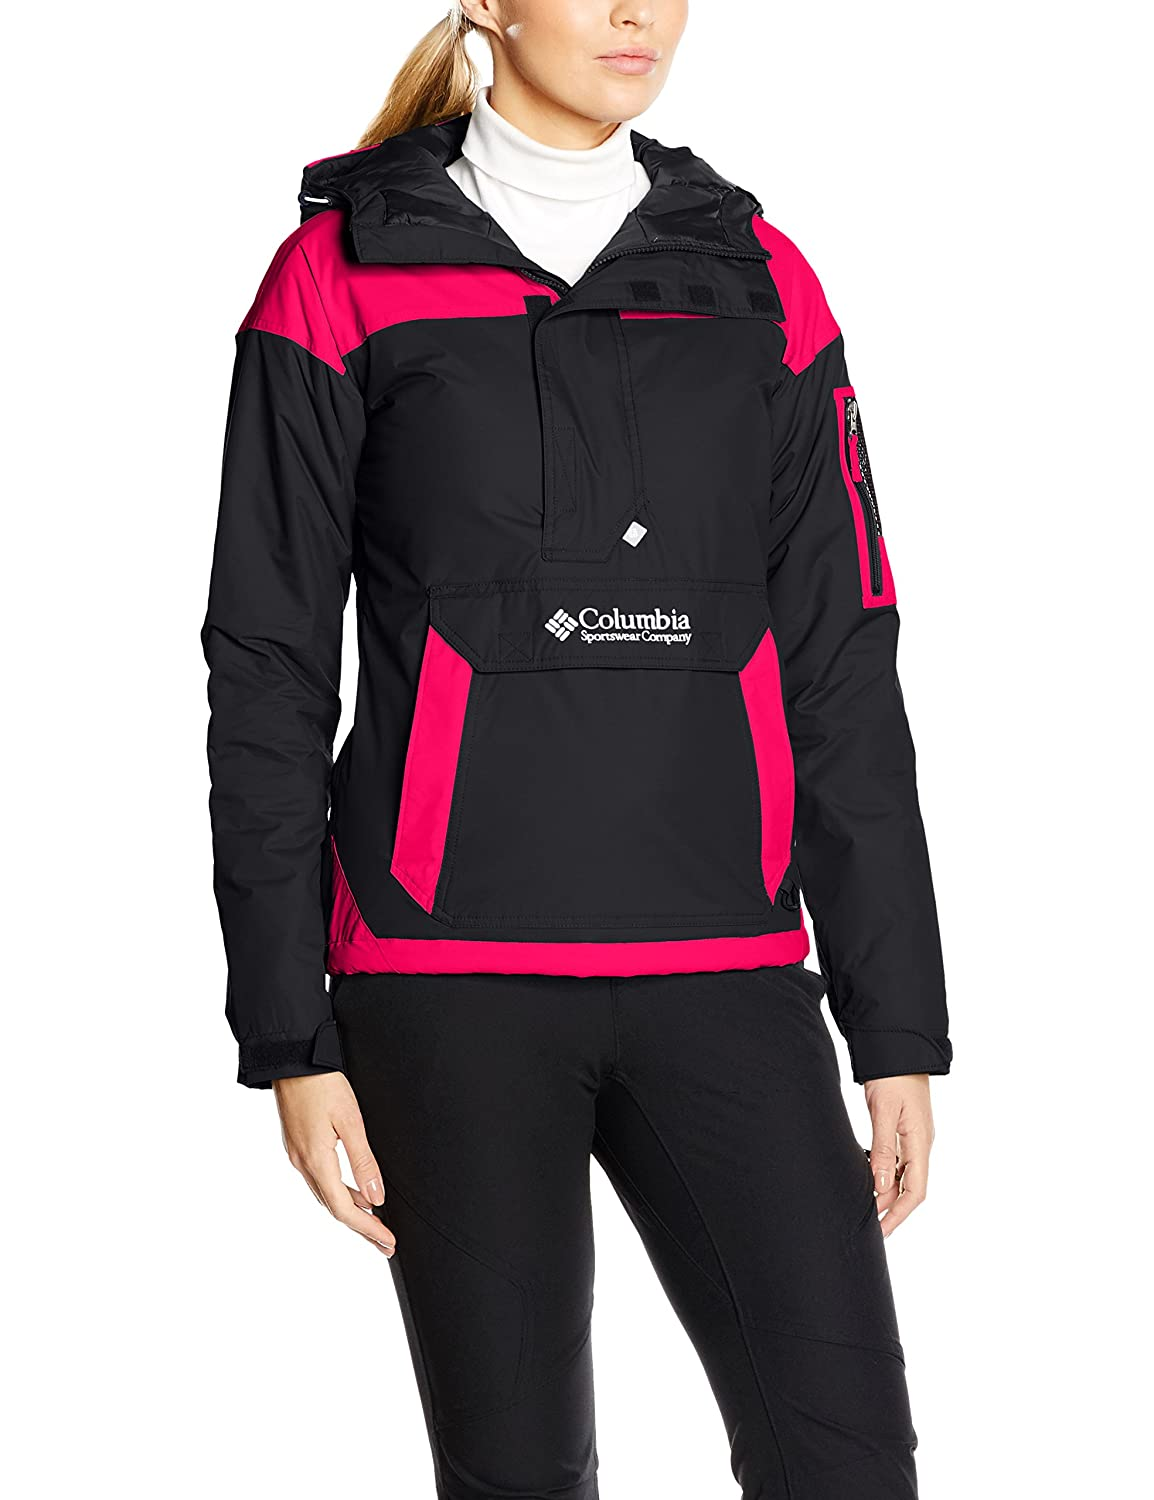 Columbia Sportswear Company Ltd Challenger Mujer Jersey